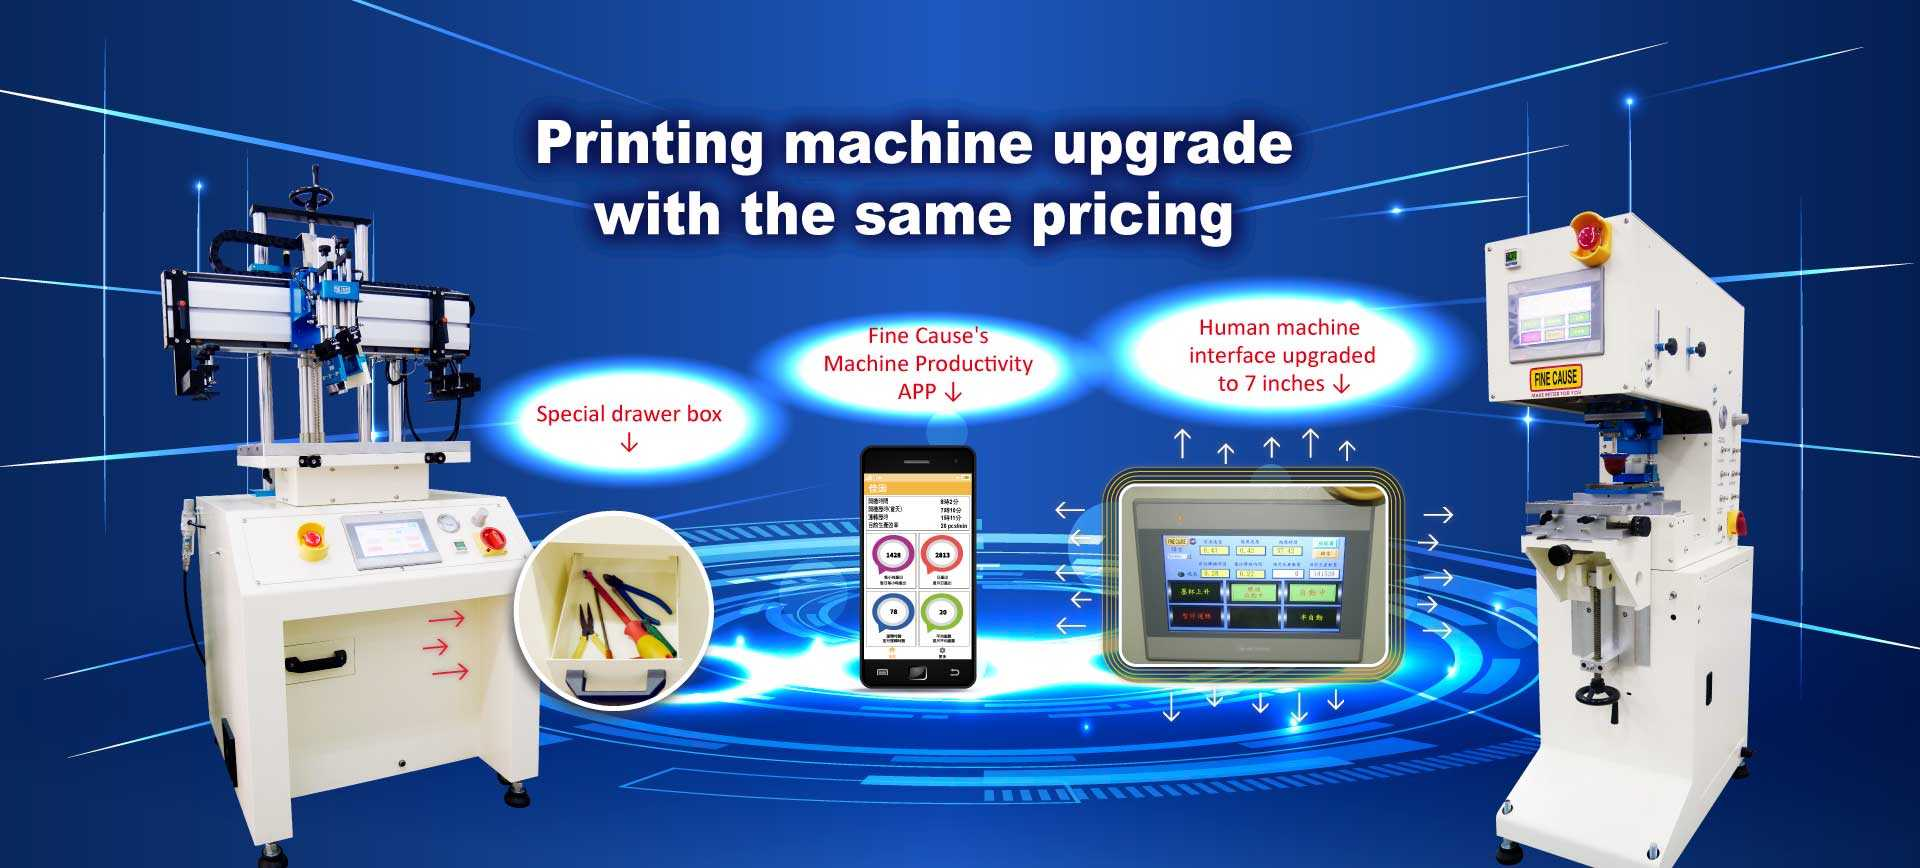 Finecause's pad printer/screen printer is fully upgraded ~ the price remains unchanged佳因移印機/網印機全面升級~價格不變